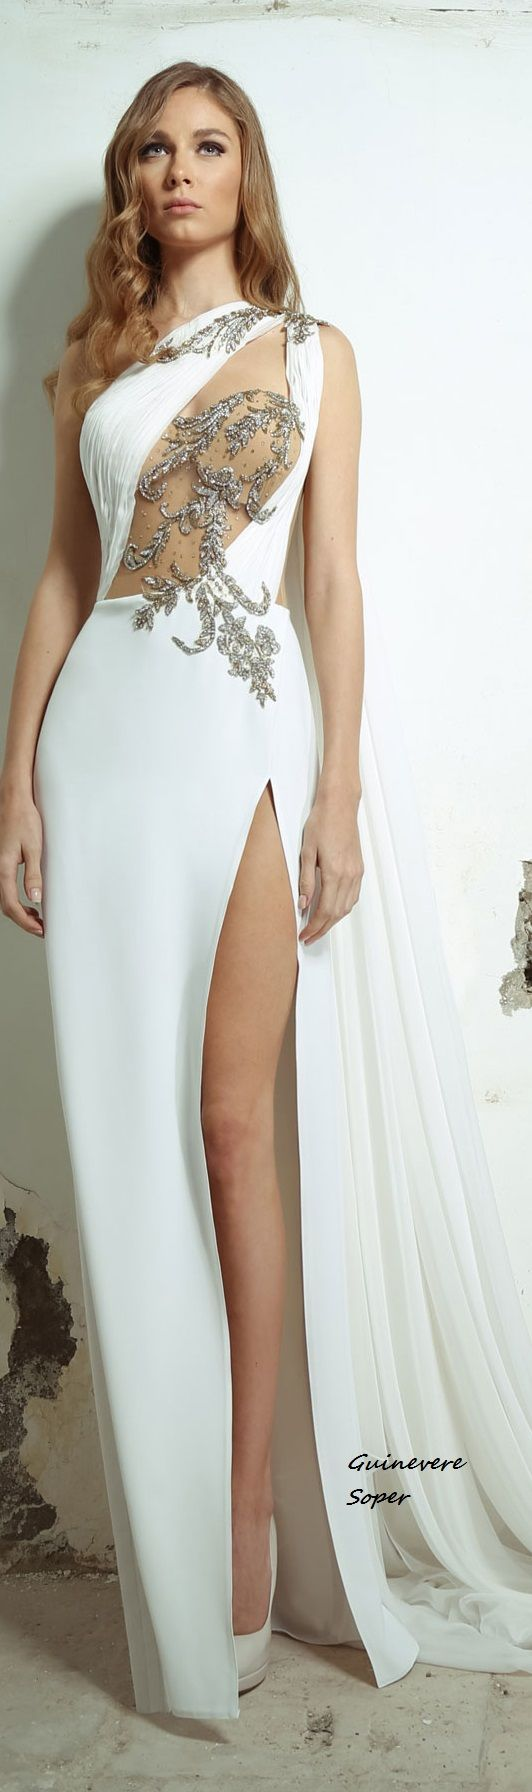 Marwanu khaled moda pinterest couture couture and gowns